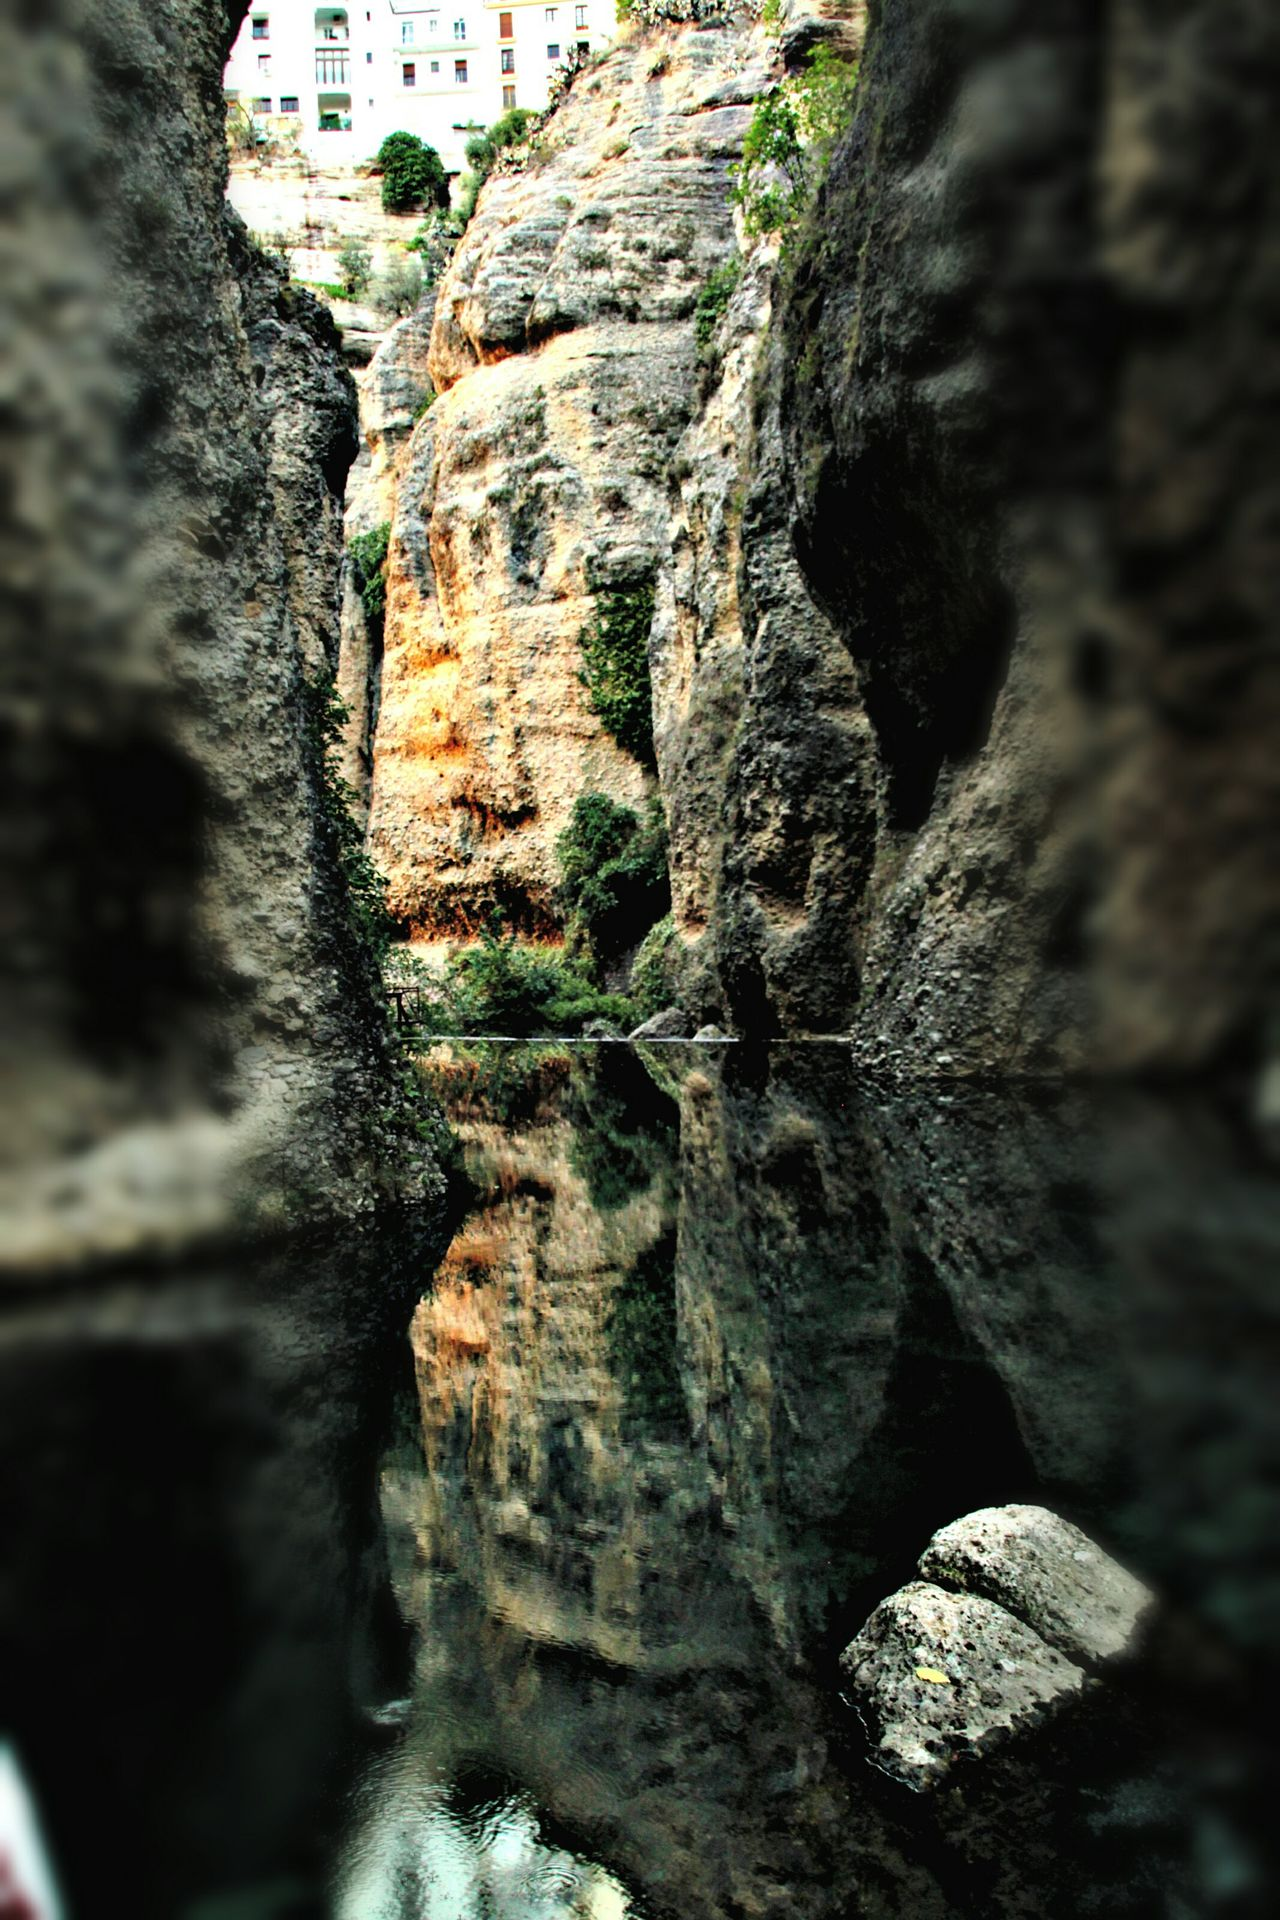 Nature Close-up Day Growth Outdoors No People Backgrounds Beauty In Nature Tranquility Ronda Spain Ronda, Malaga Ronda Houses Focus On Background Cliffs And Water Cliff Face Reflections In The Water Reflection In The Water Travel EyeEm Gallery Check This Out